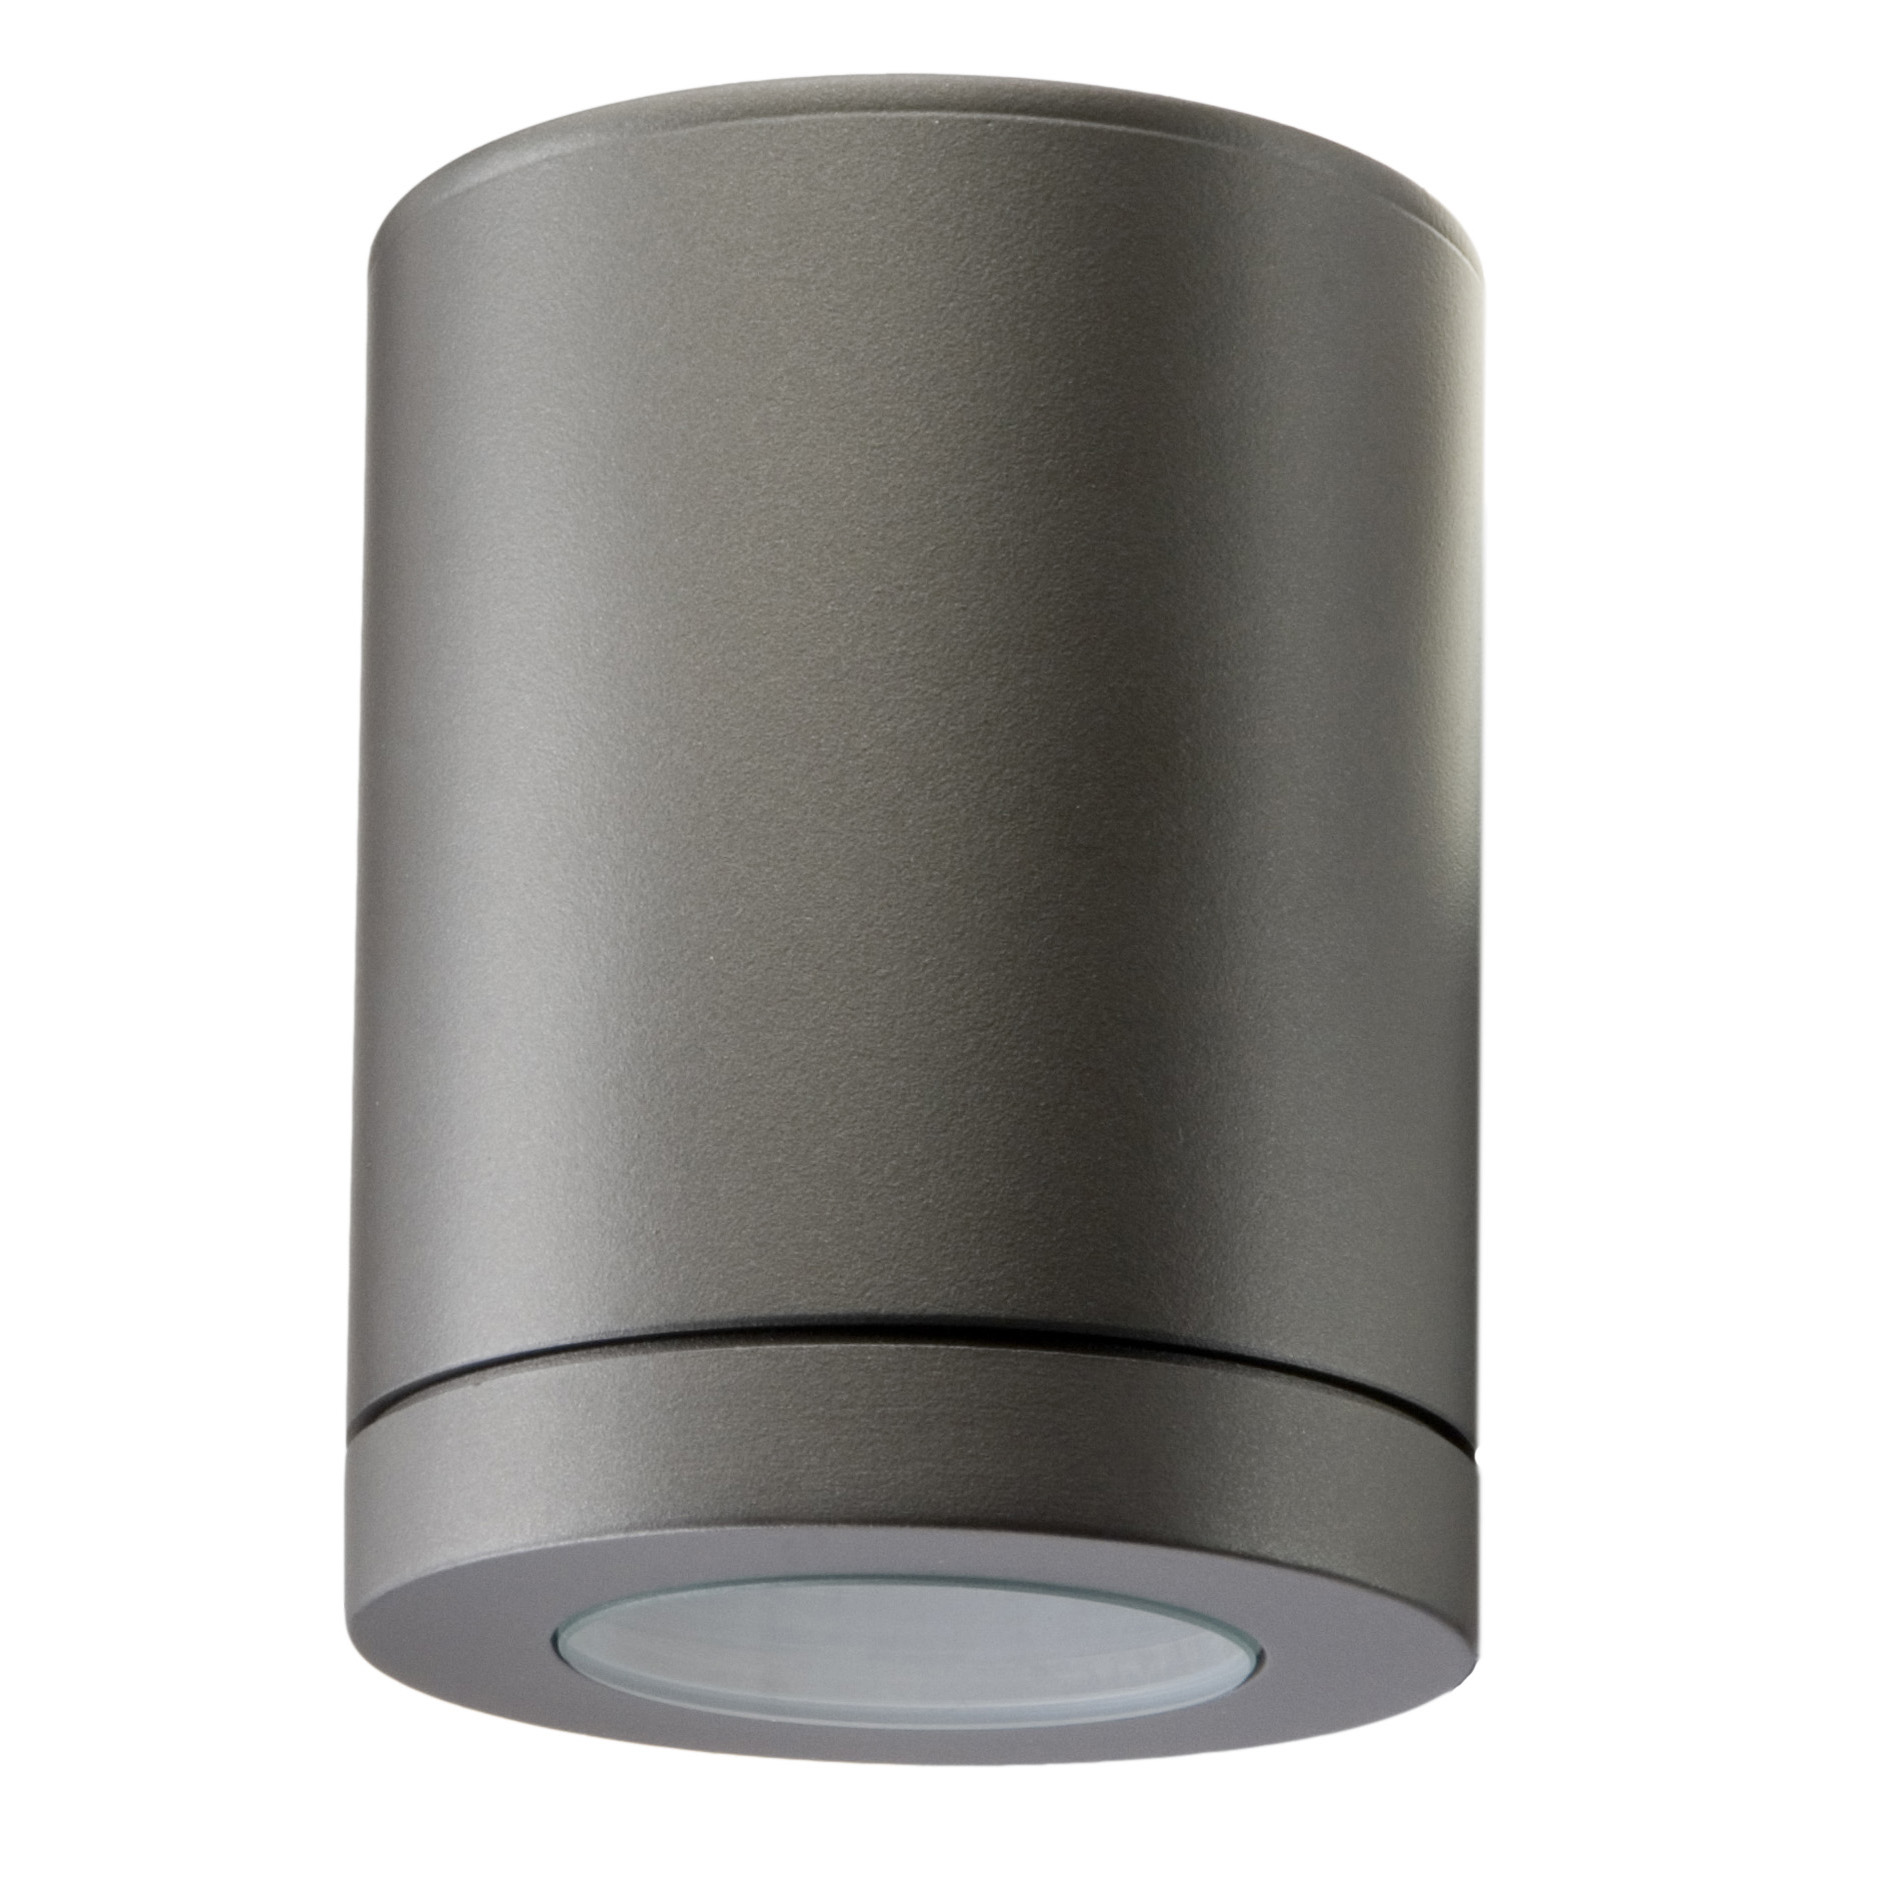 SG lighting LED Metro 35W grafiet 623695 plafond